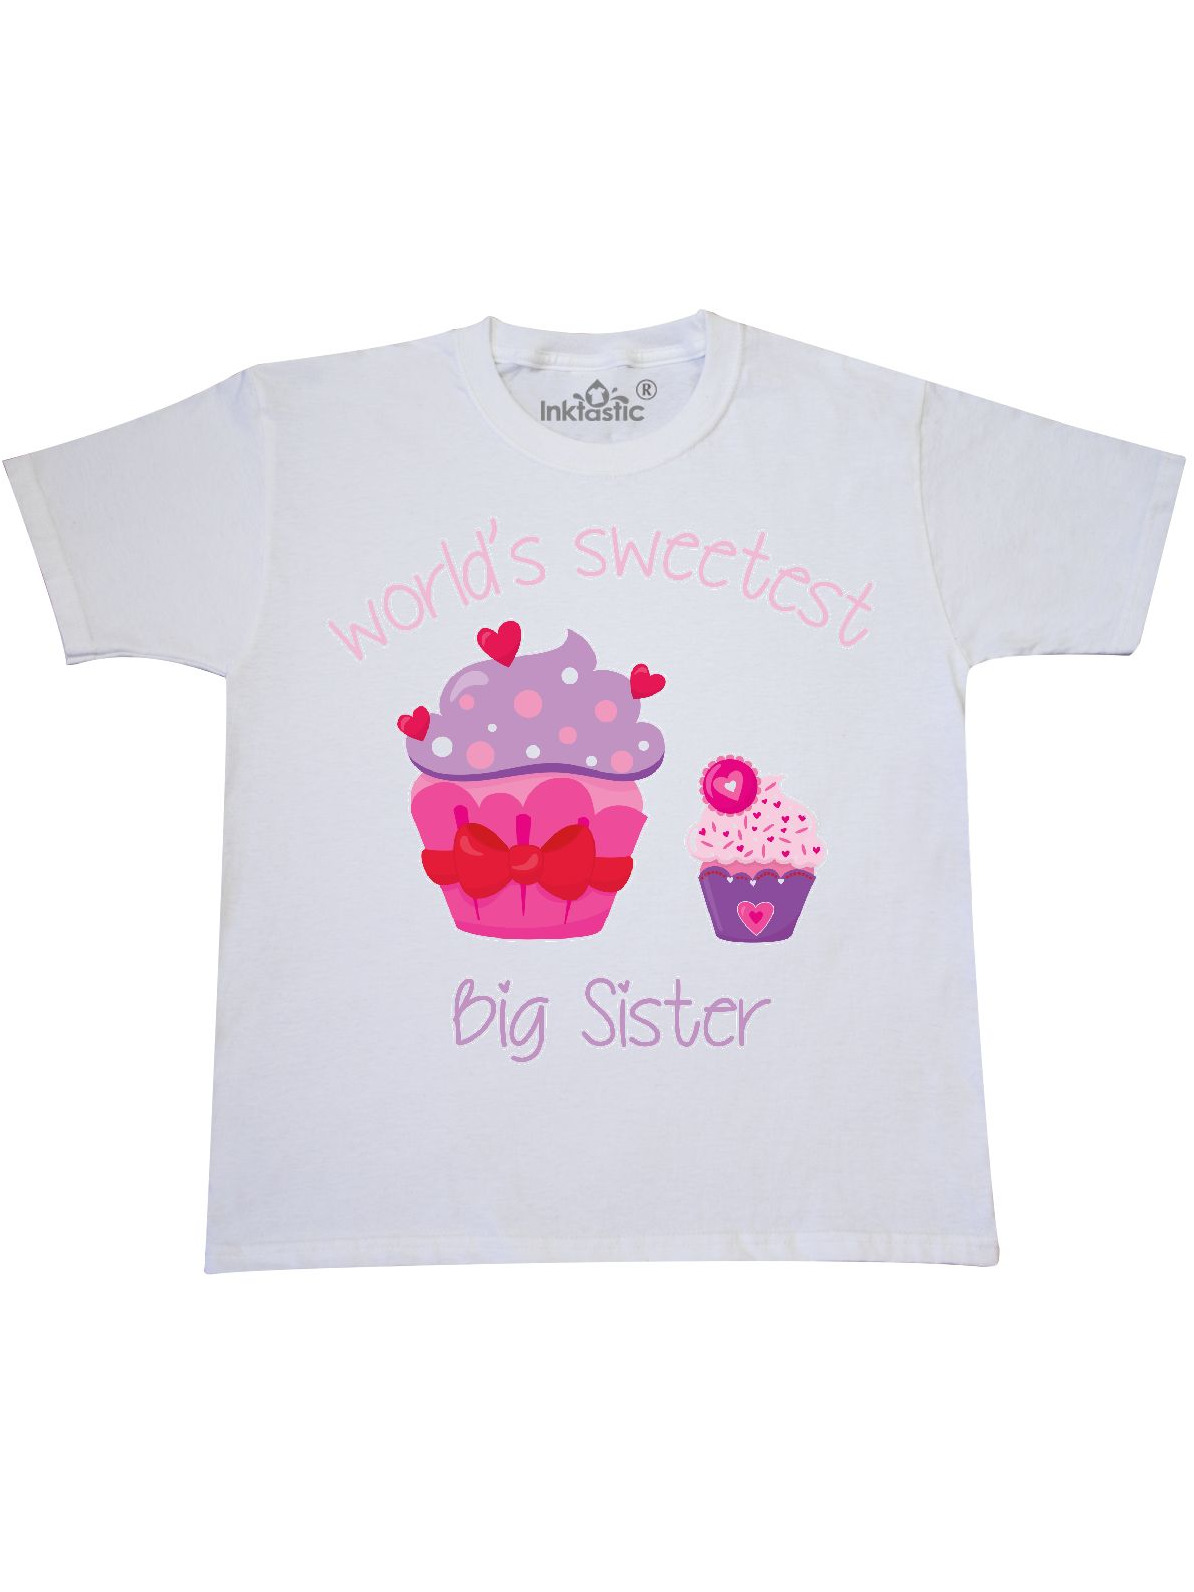 World's Sweetest Big Sister Youth T-Shirt